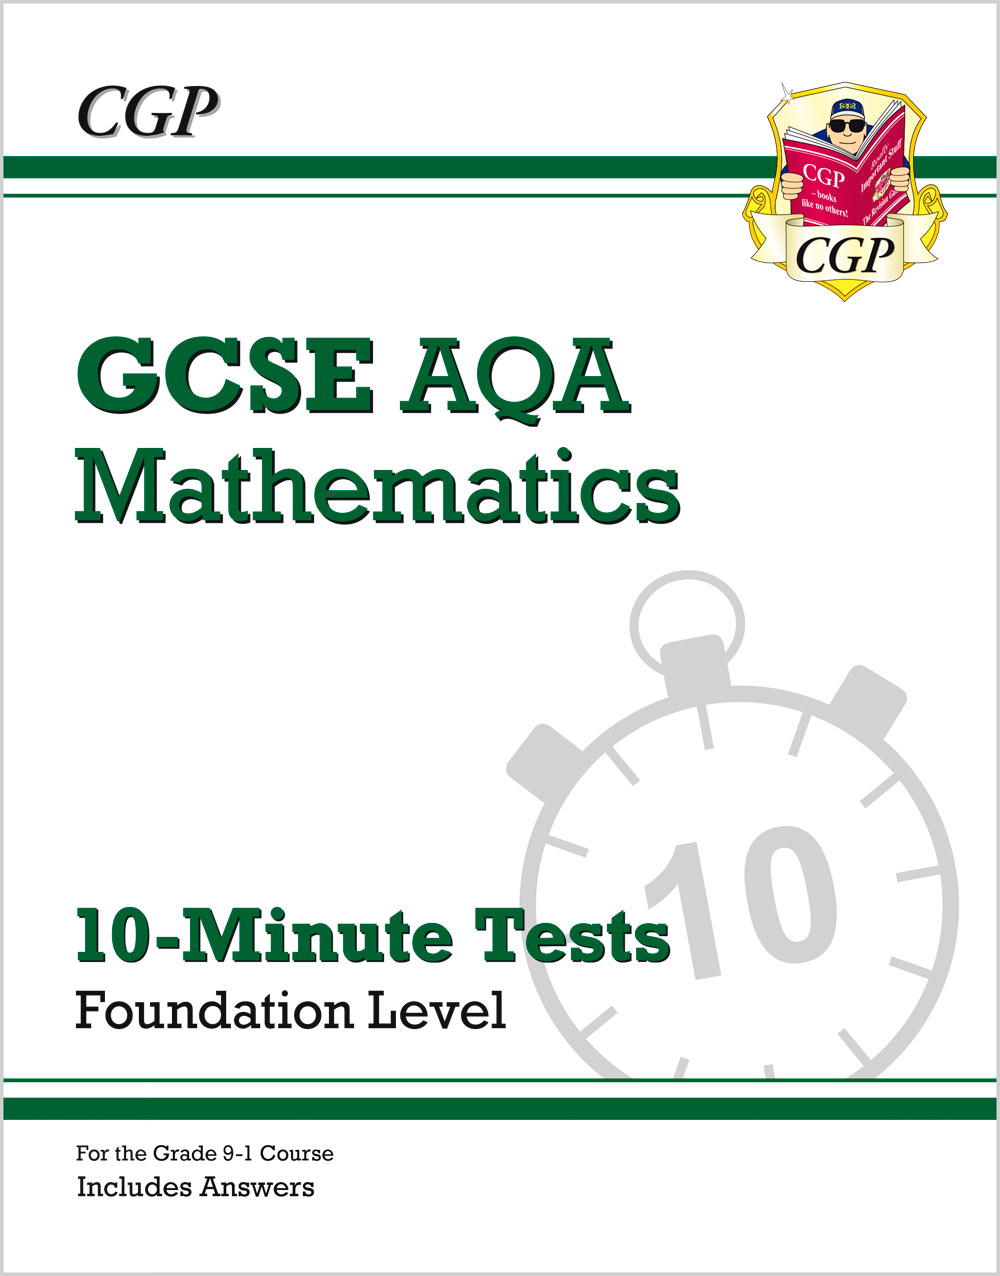 MQFXP41 - New Grade 9-1 GCSE Maths AQA 10-Minute Tests - Foundation (includes Answers)